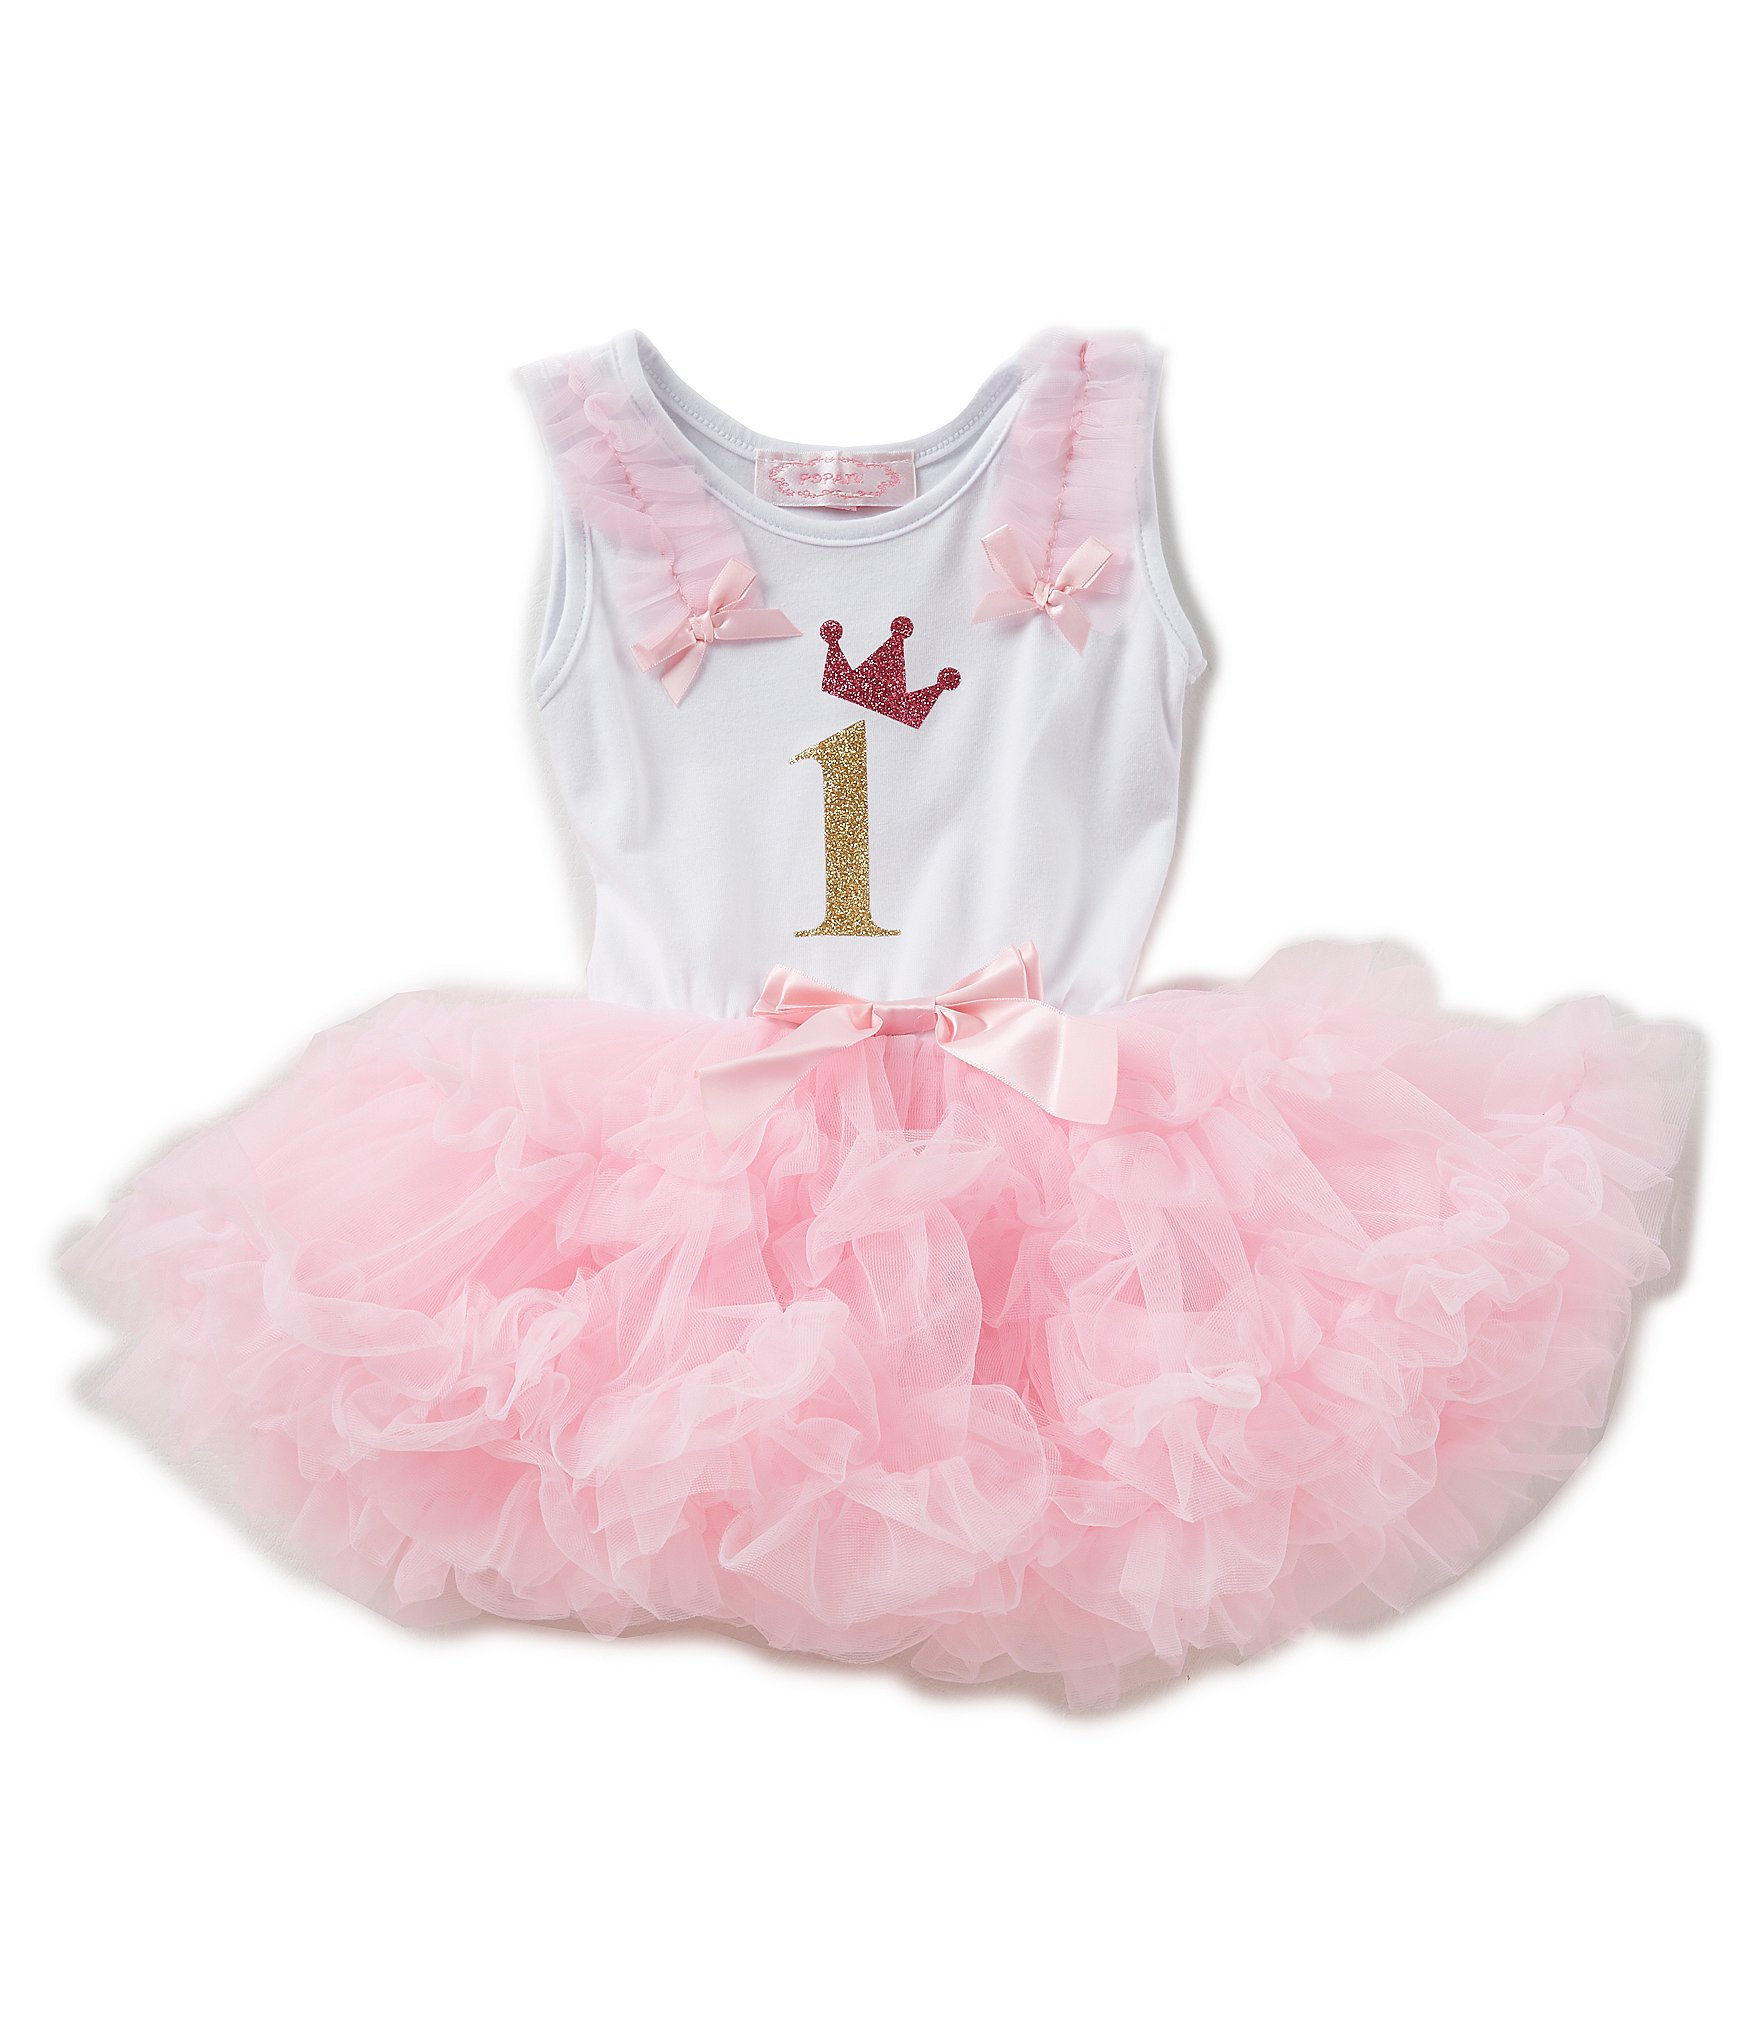 99257421d tulle dress: Kids' & Baby Clothing & Accessories | Dillard's